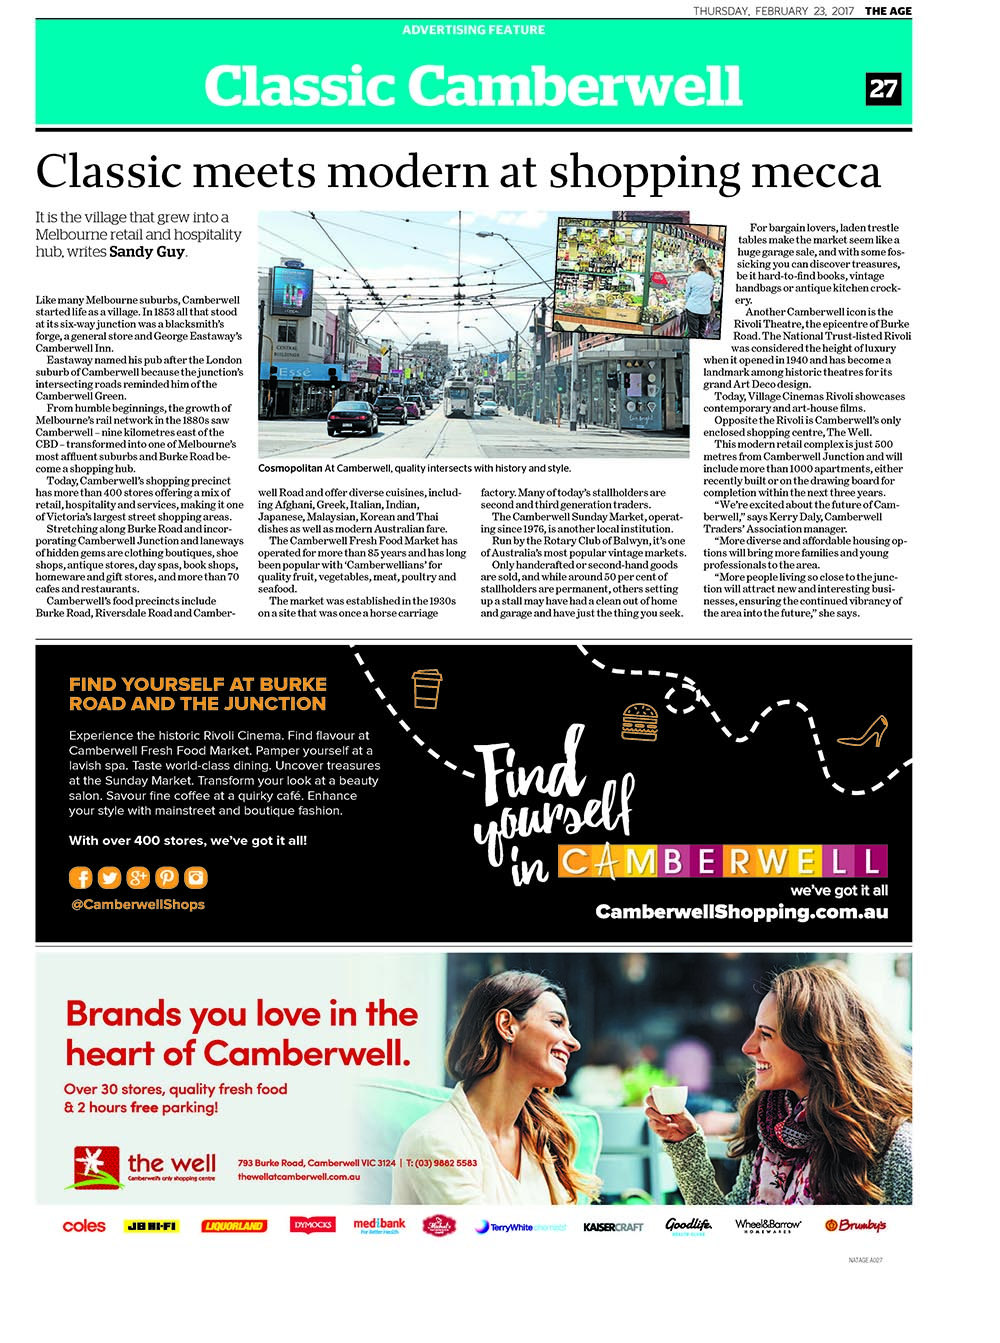 Camberwell ad feature for Wednesday's edition of The Age.